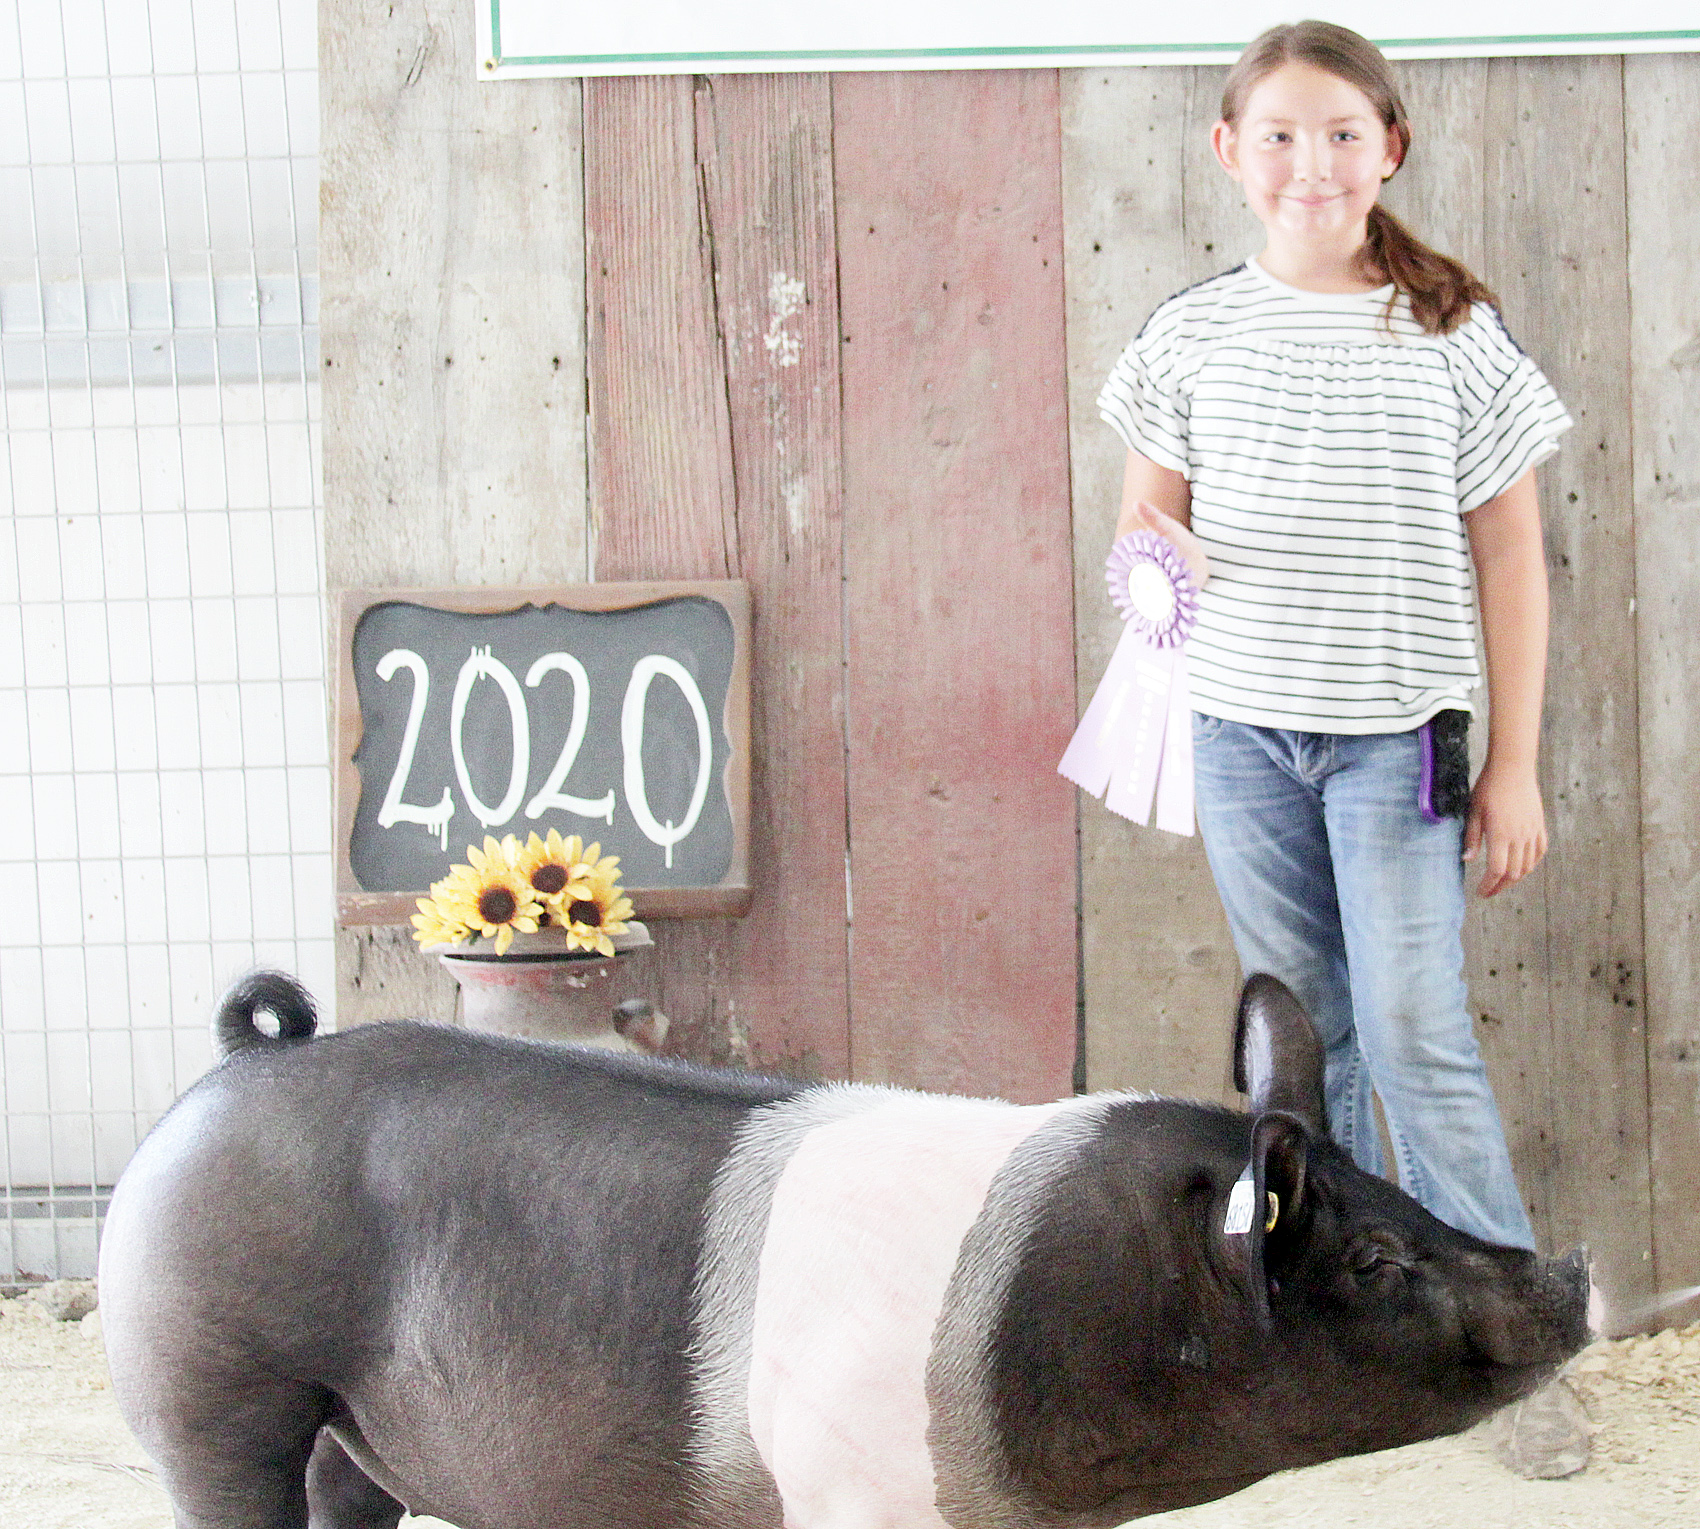 Harper Mitchell of the Mayetta Mustangs 4-H Club was named Reserve Champion beginner hog showman at the 2020 Jackson County Fair.